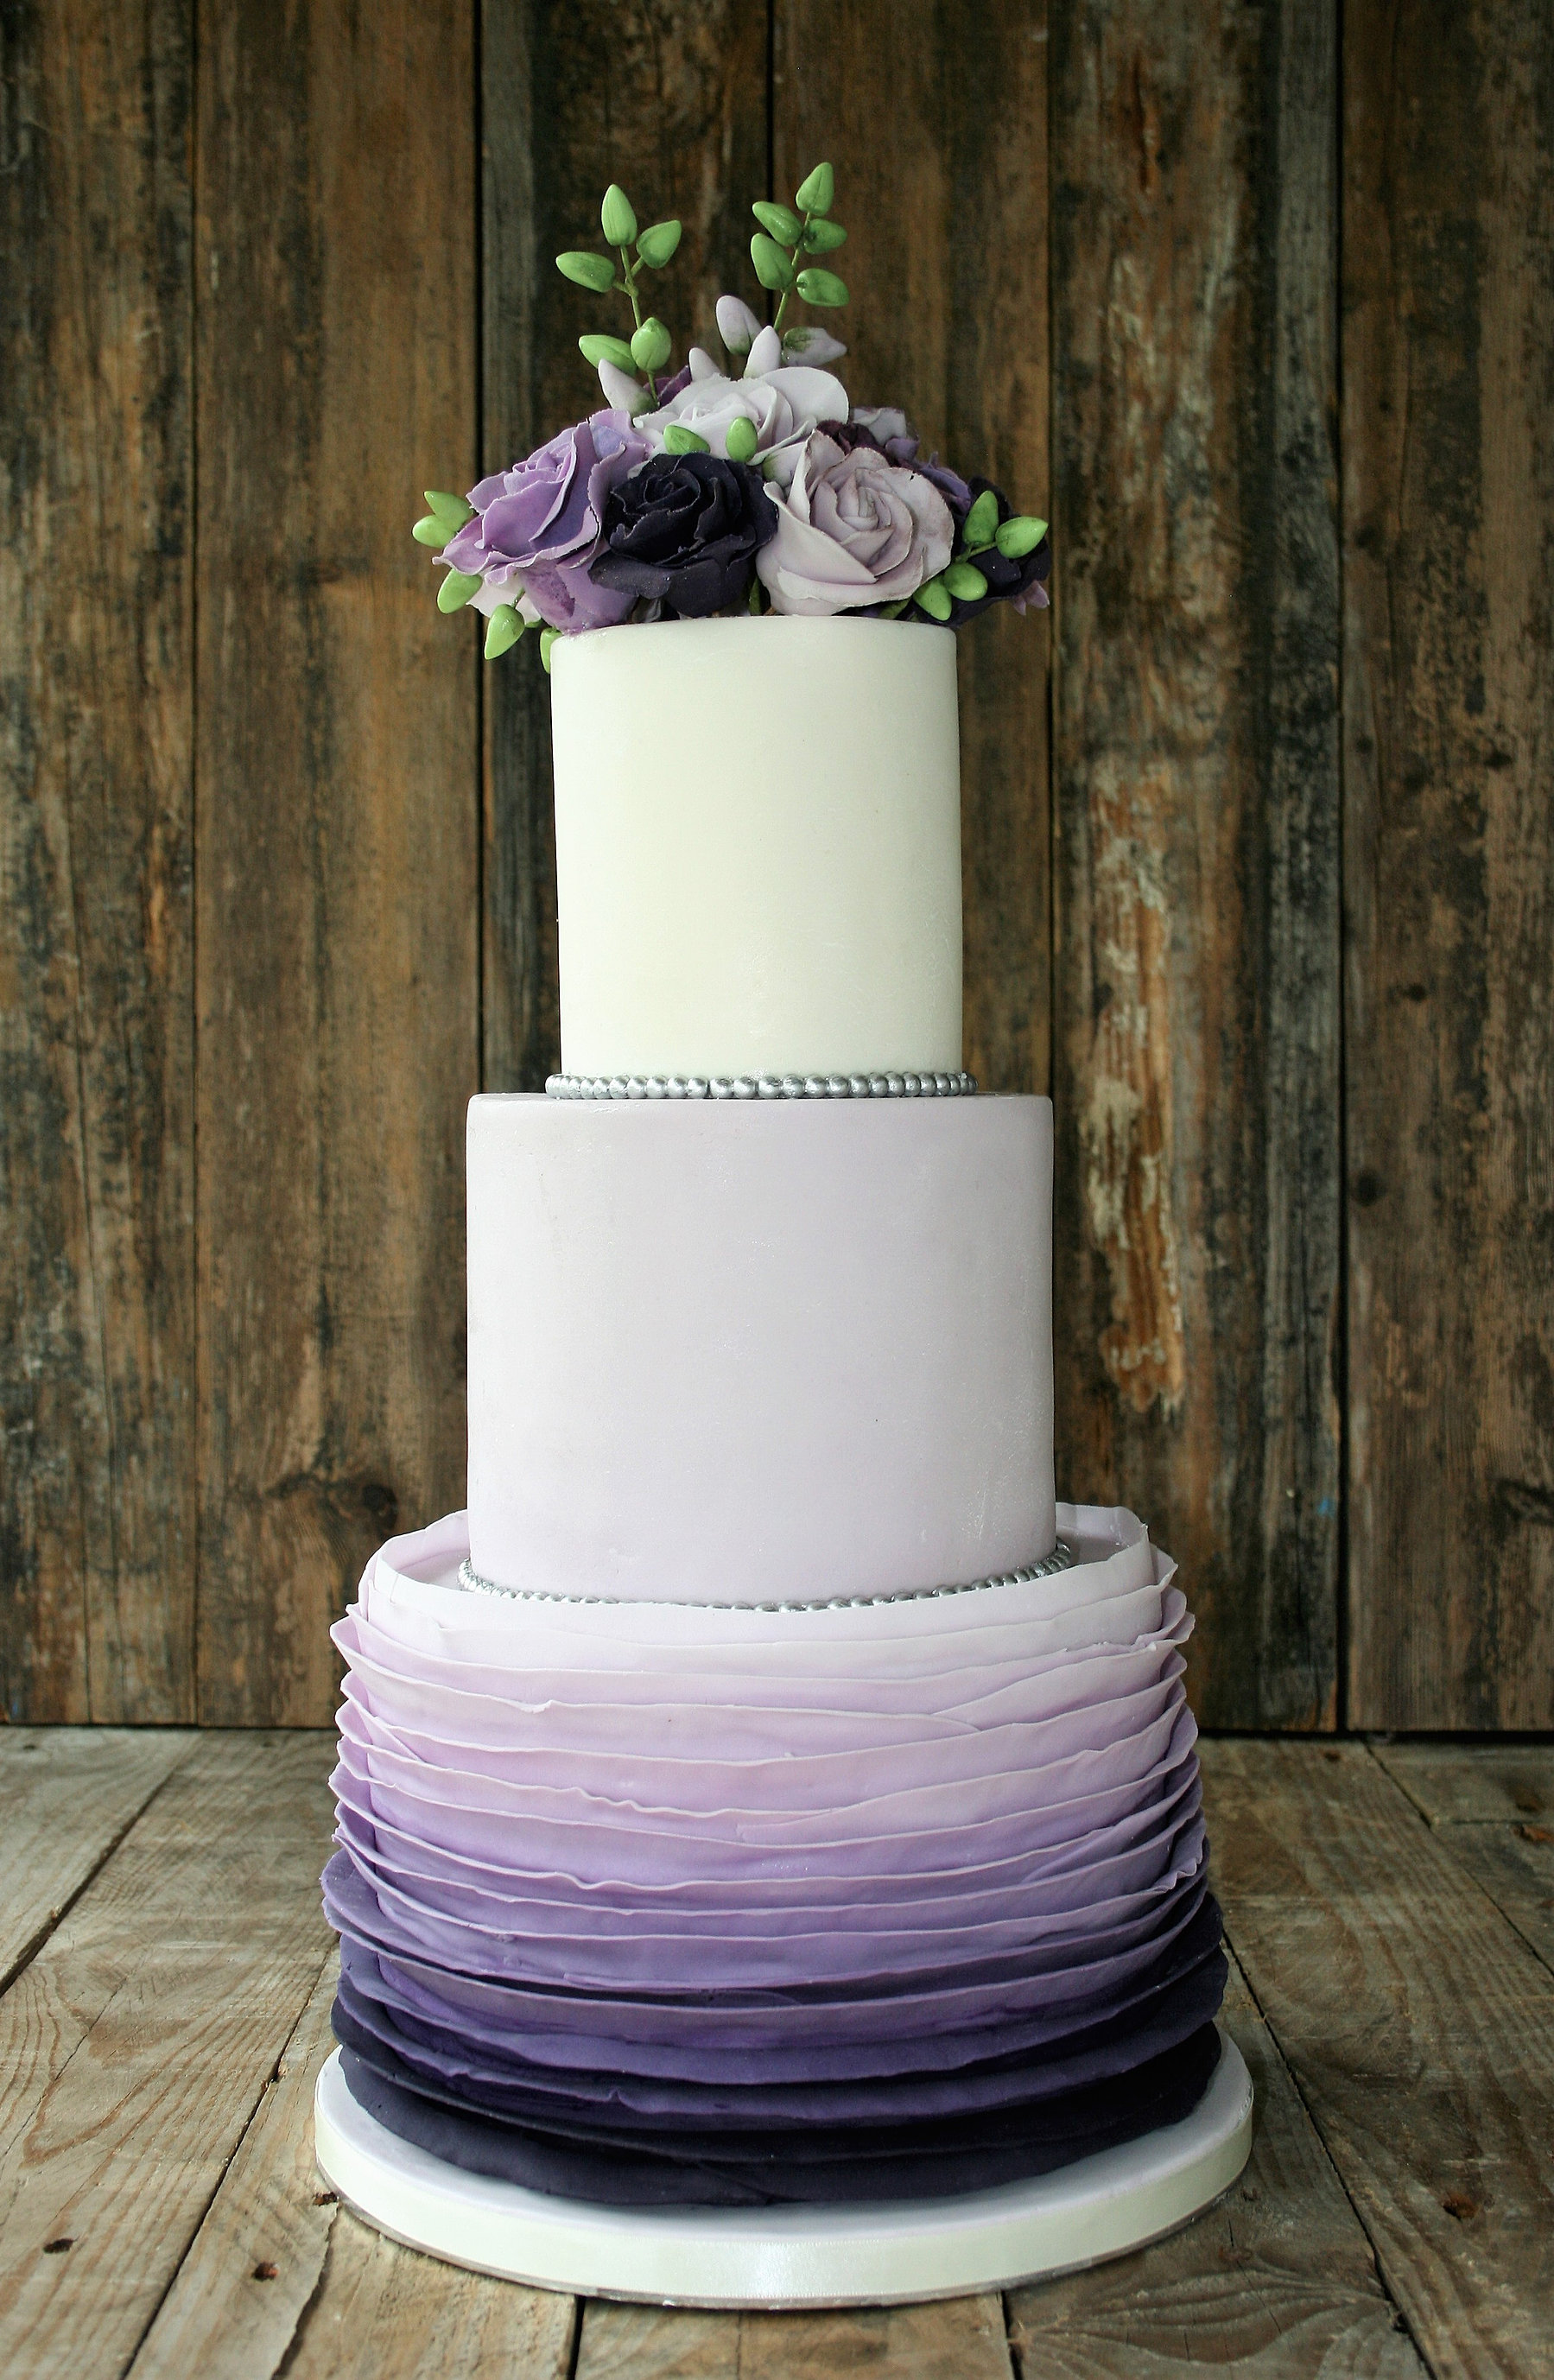 Love Um Cakes Wedding Cakes Birthdays munions Ireland